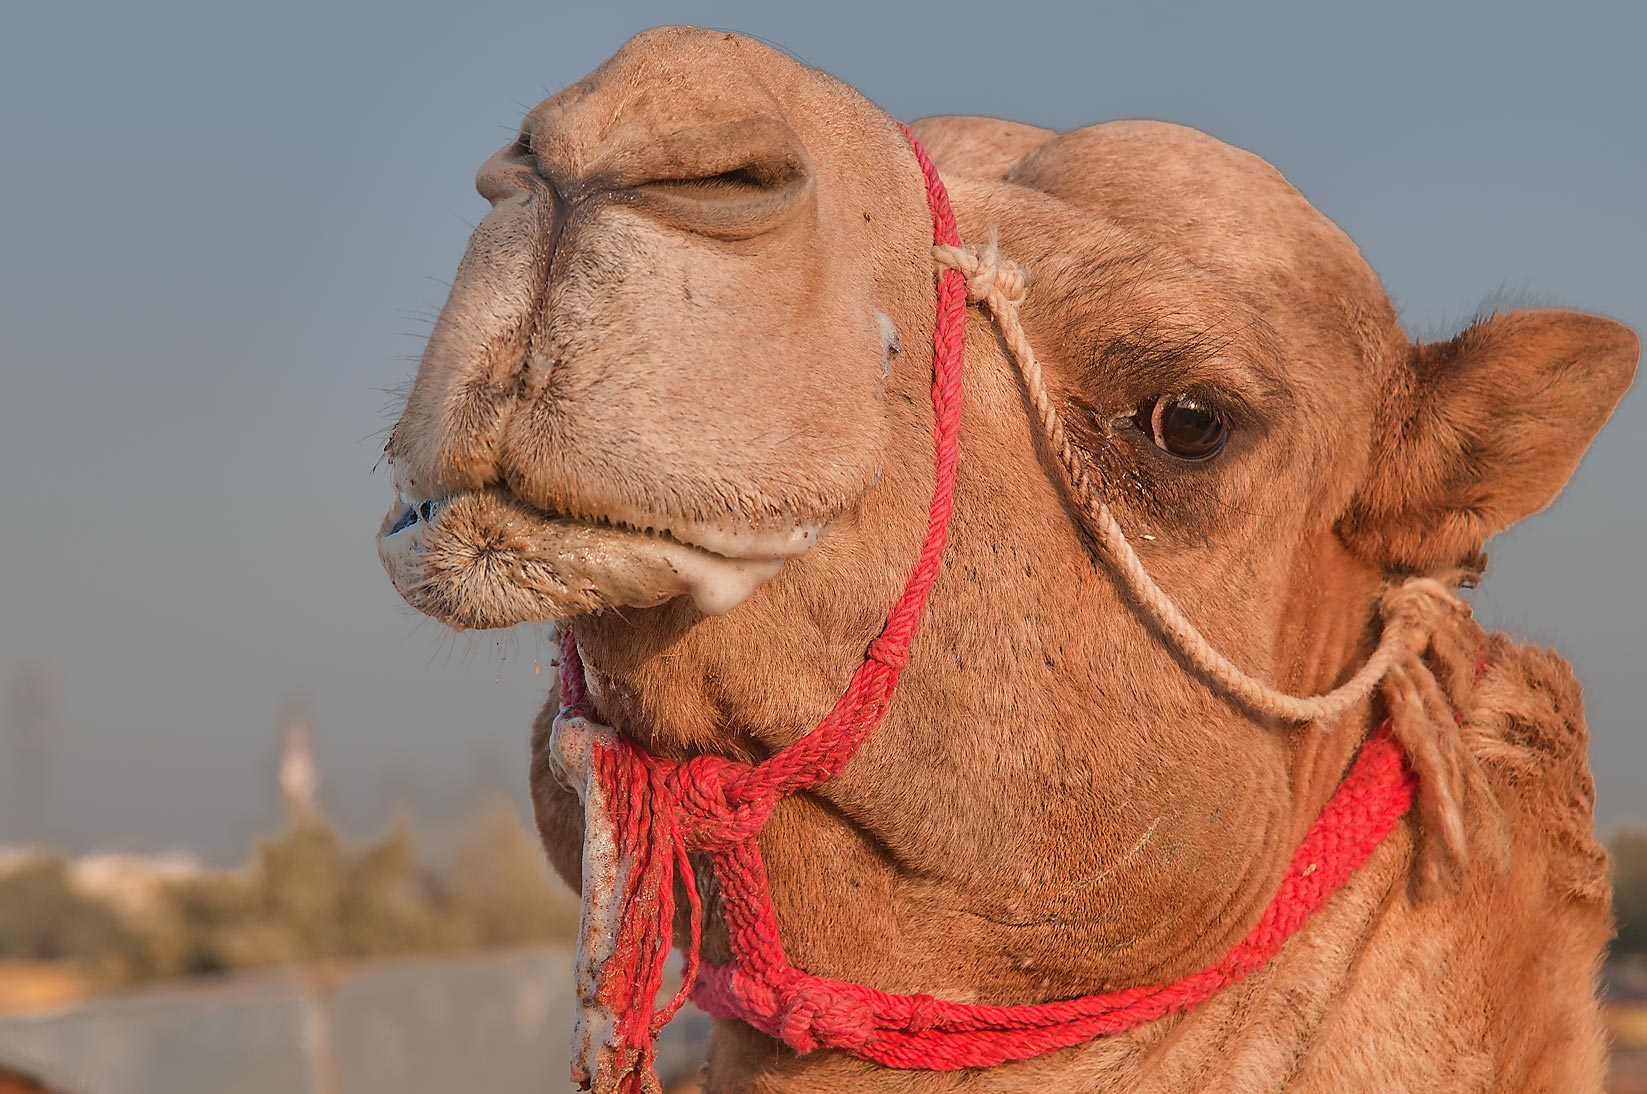 Bulldog faced camel at sunrise in Camel Market (Souq). Doha, Qatar